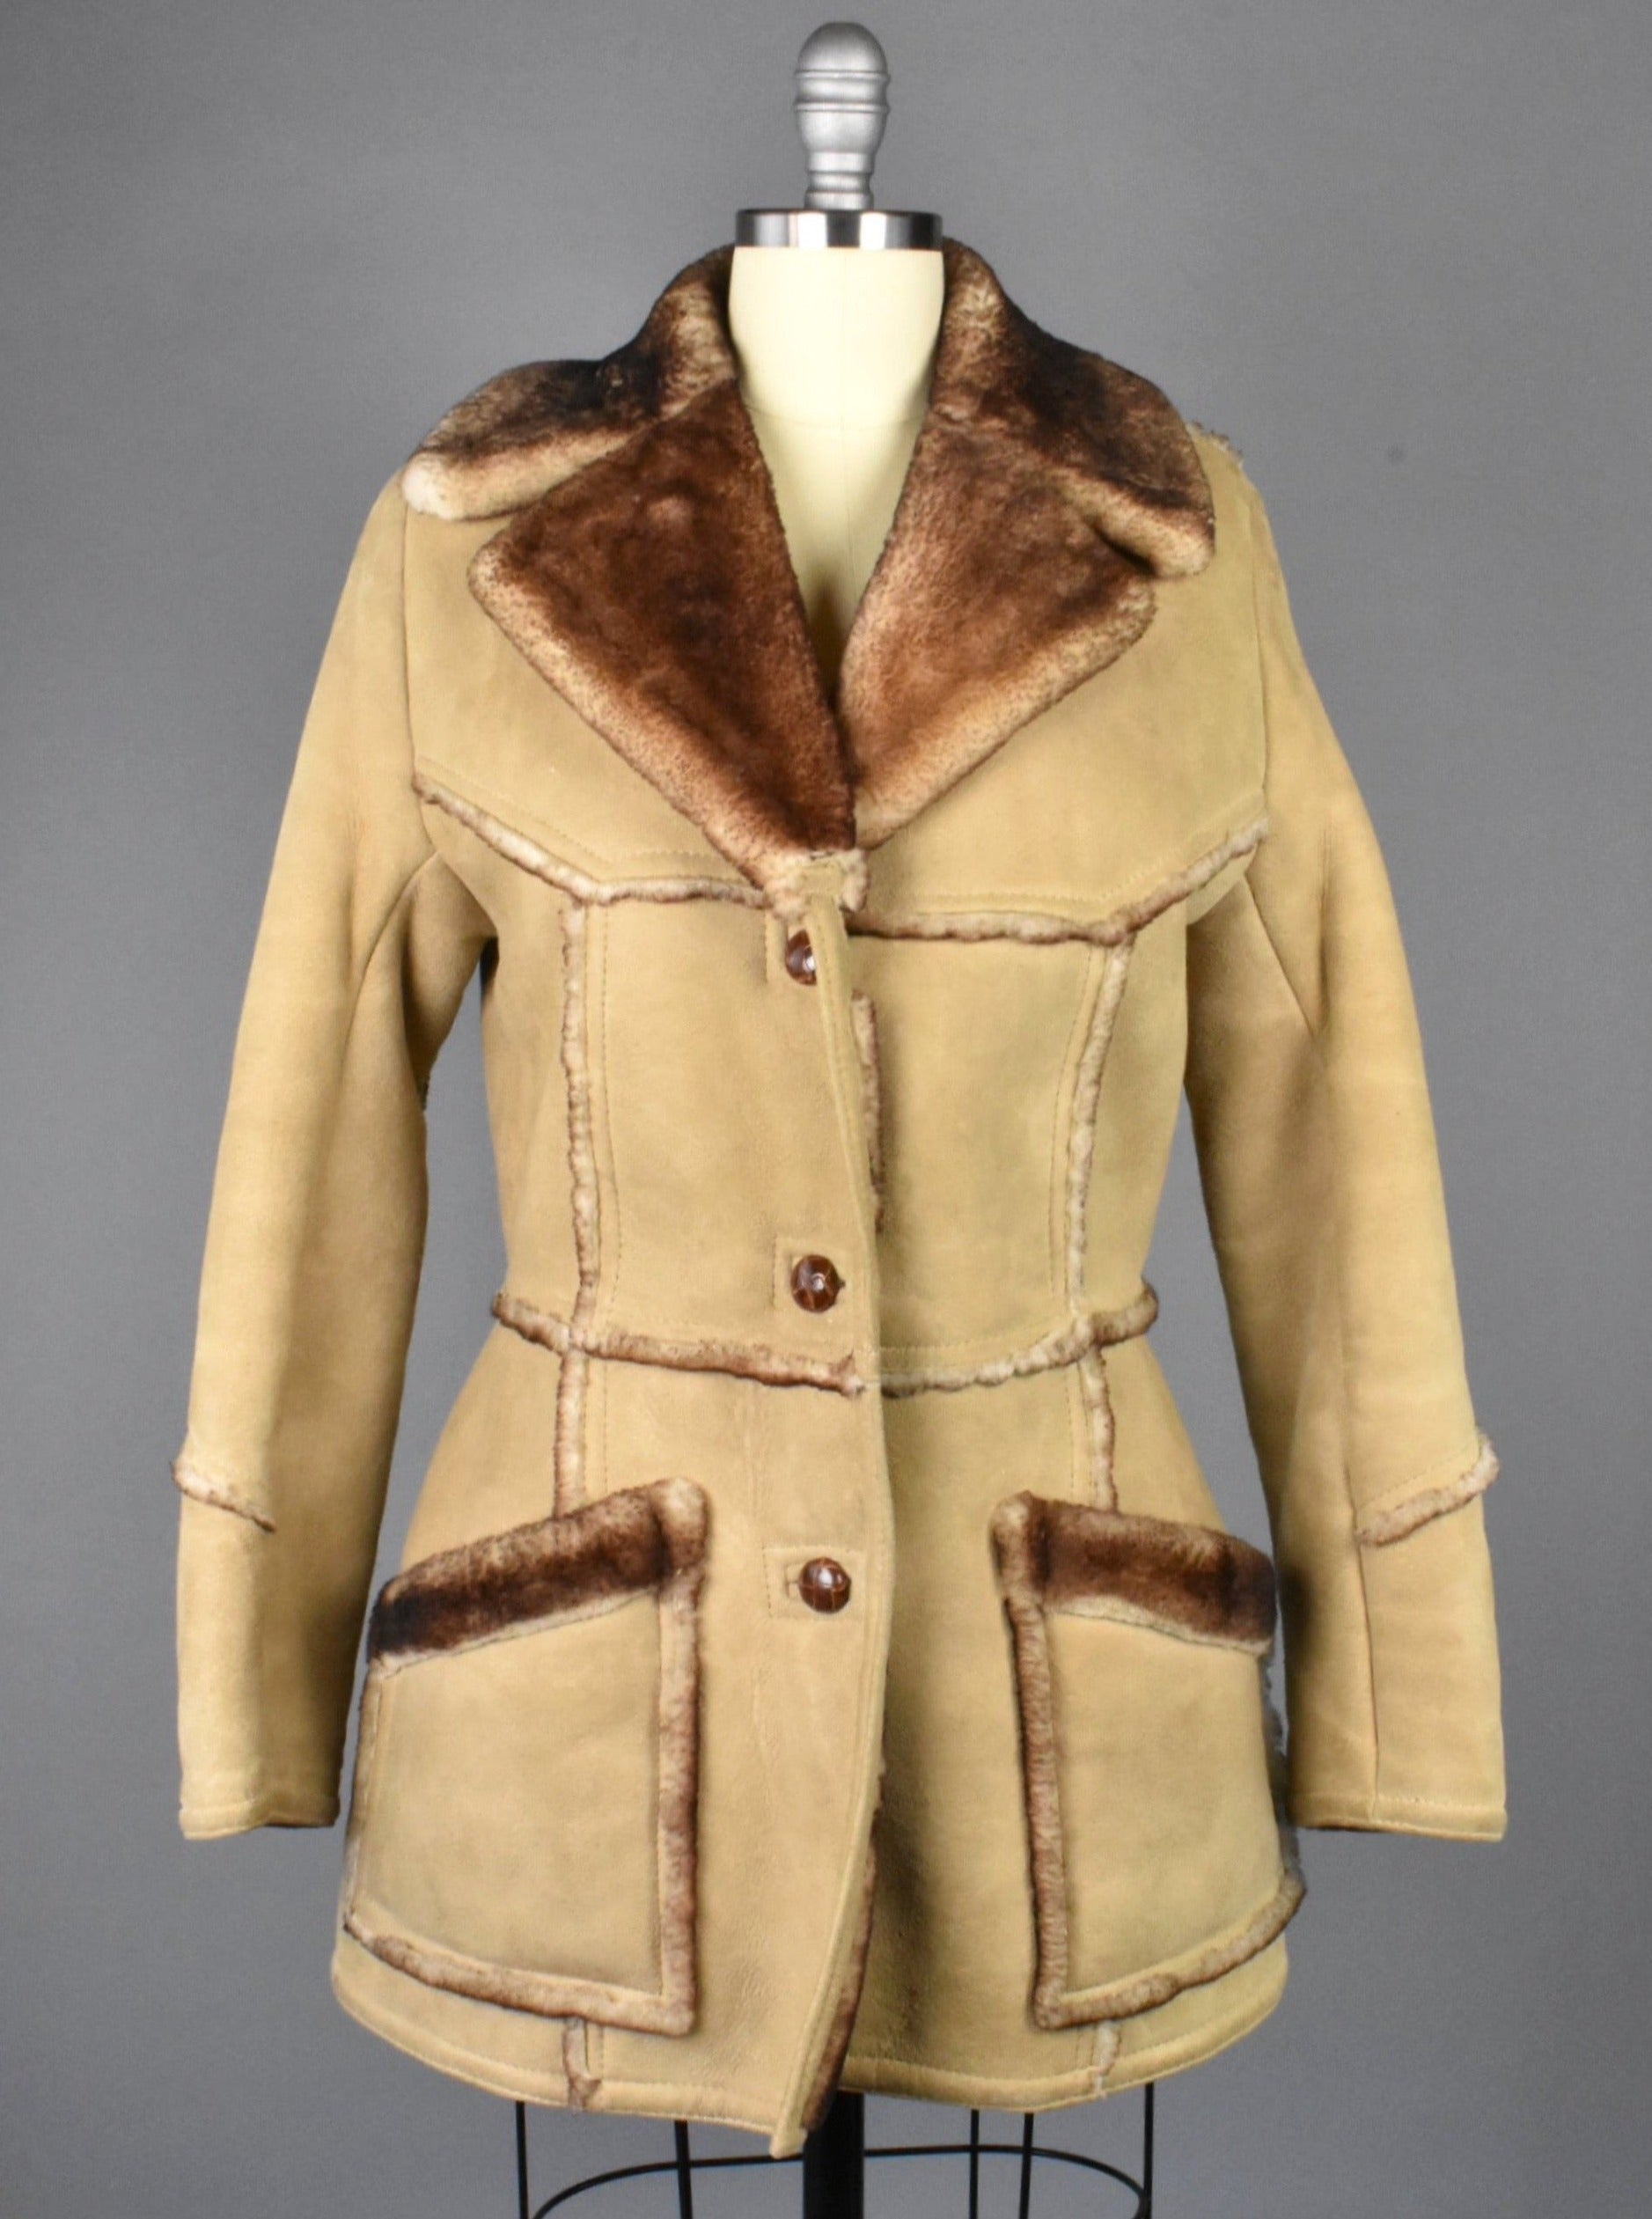 Vintage Leather Shearling Jacket, Made in USA